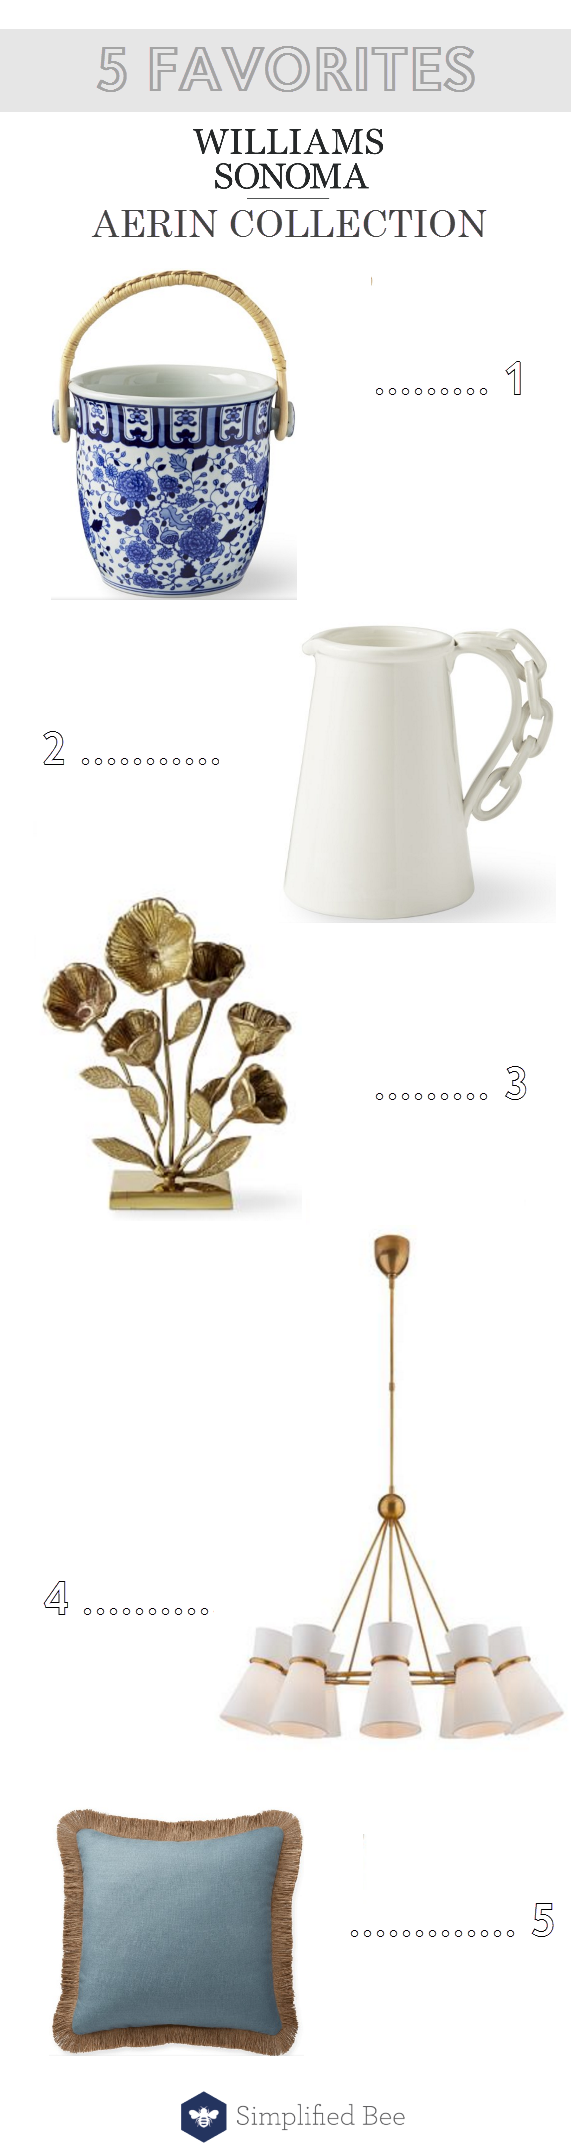 AERIN Collection for Williams Sonoma Home